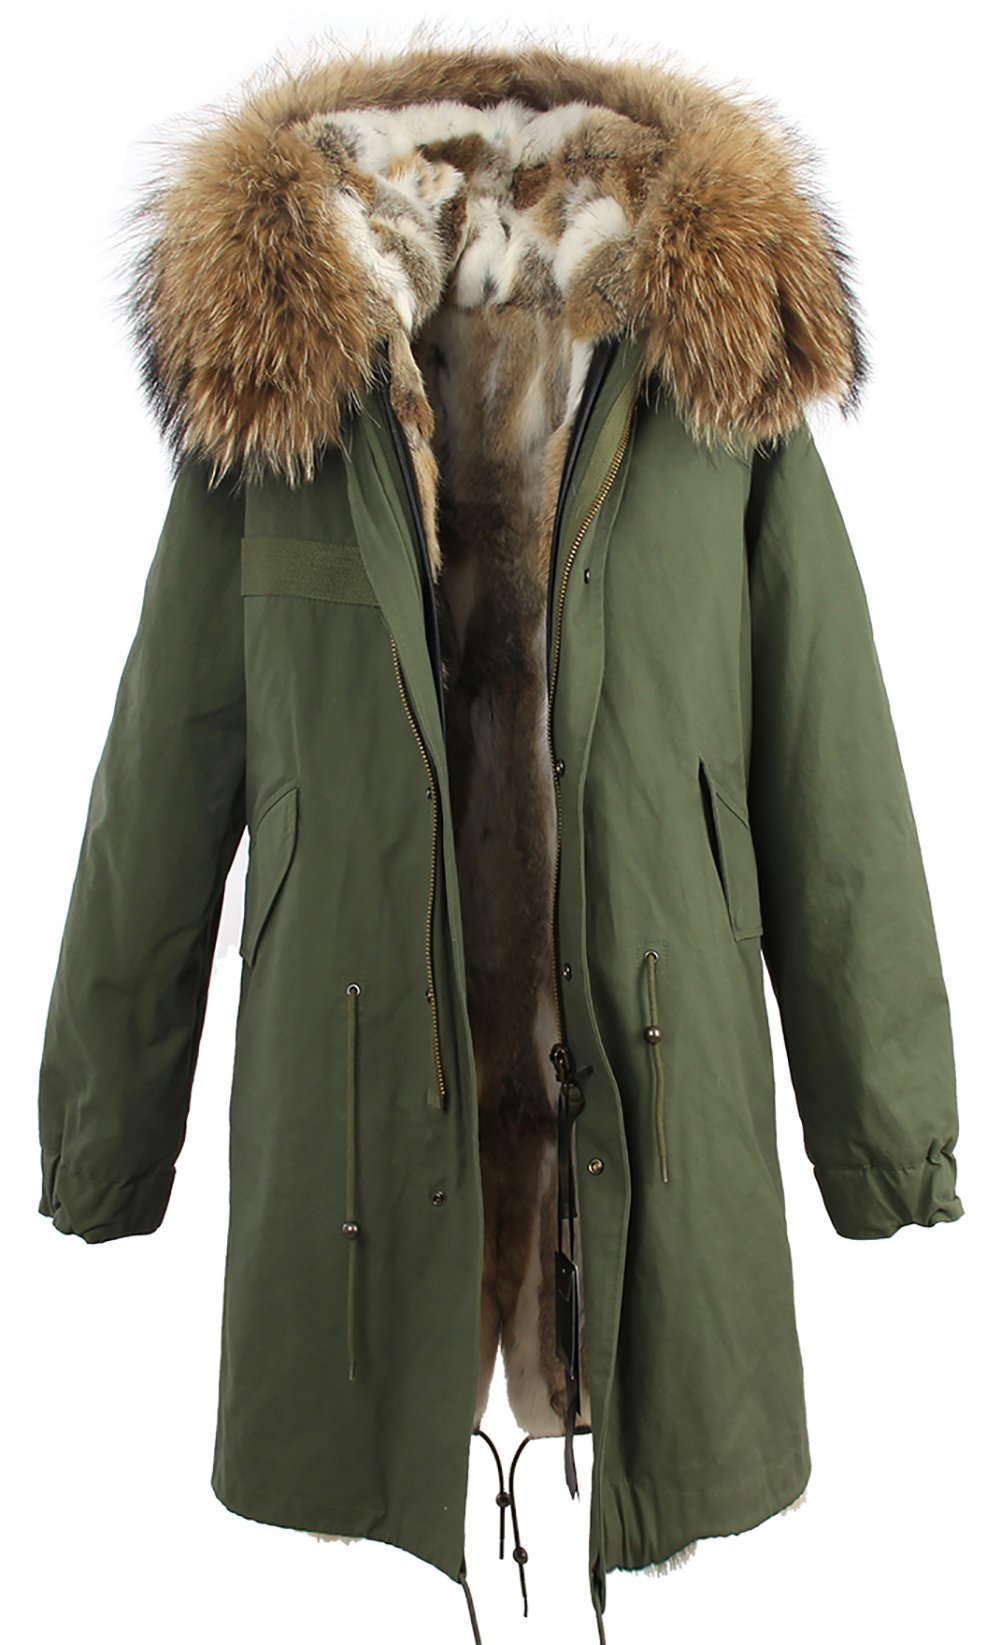 S.ROMZA Women Real Rabbit Fur Parka Upscale Long Hooded Coat Detachable Jacket Real Fur Liner (X-Large, Army Green & White Fur)